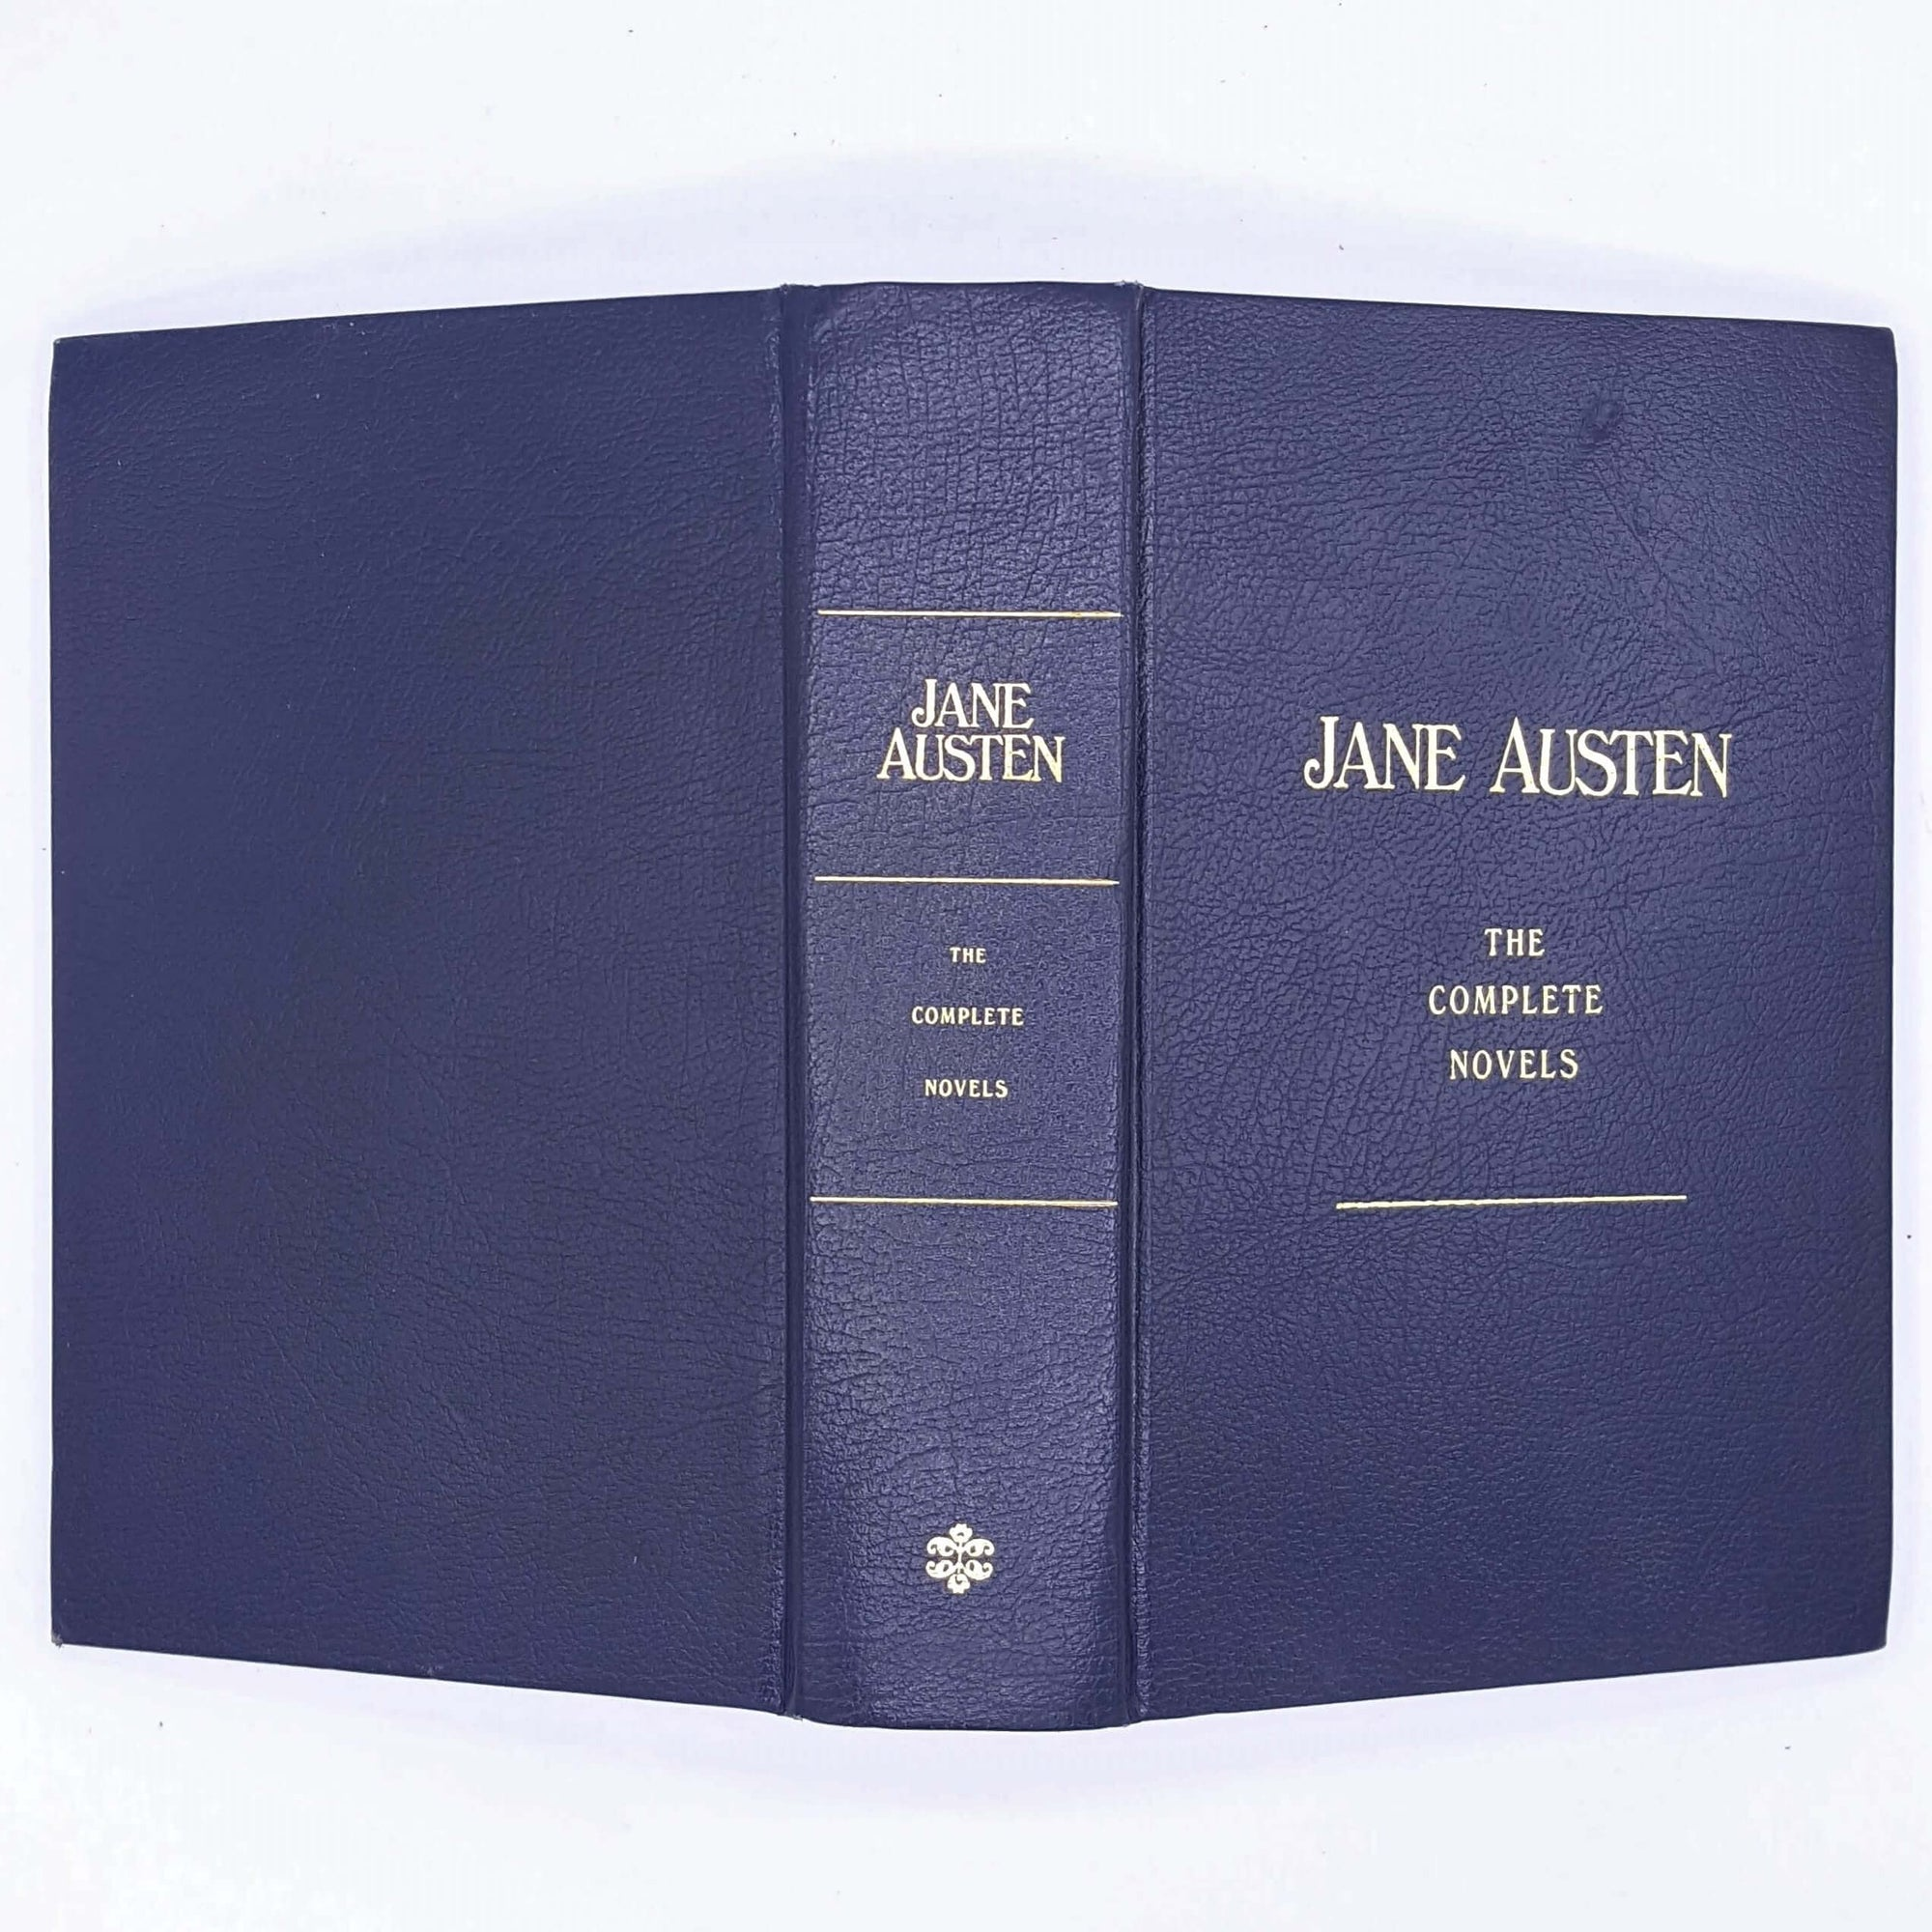 Jane Austen The Complete Novels 1996 Classic Books